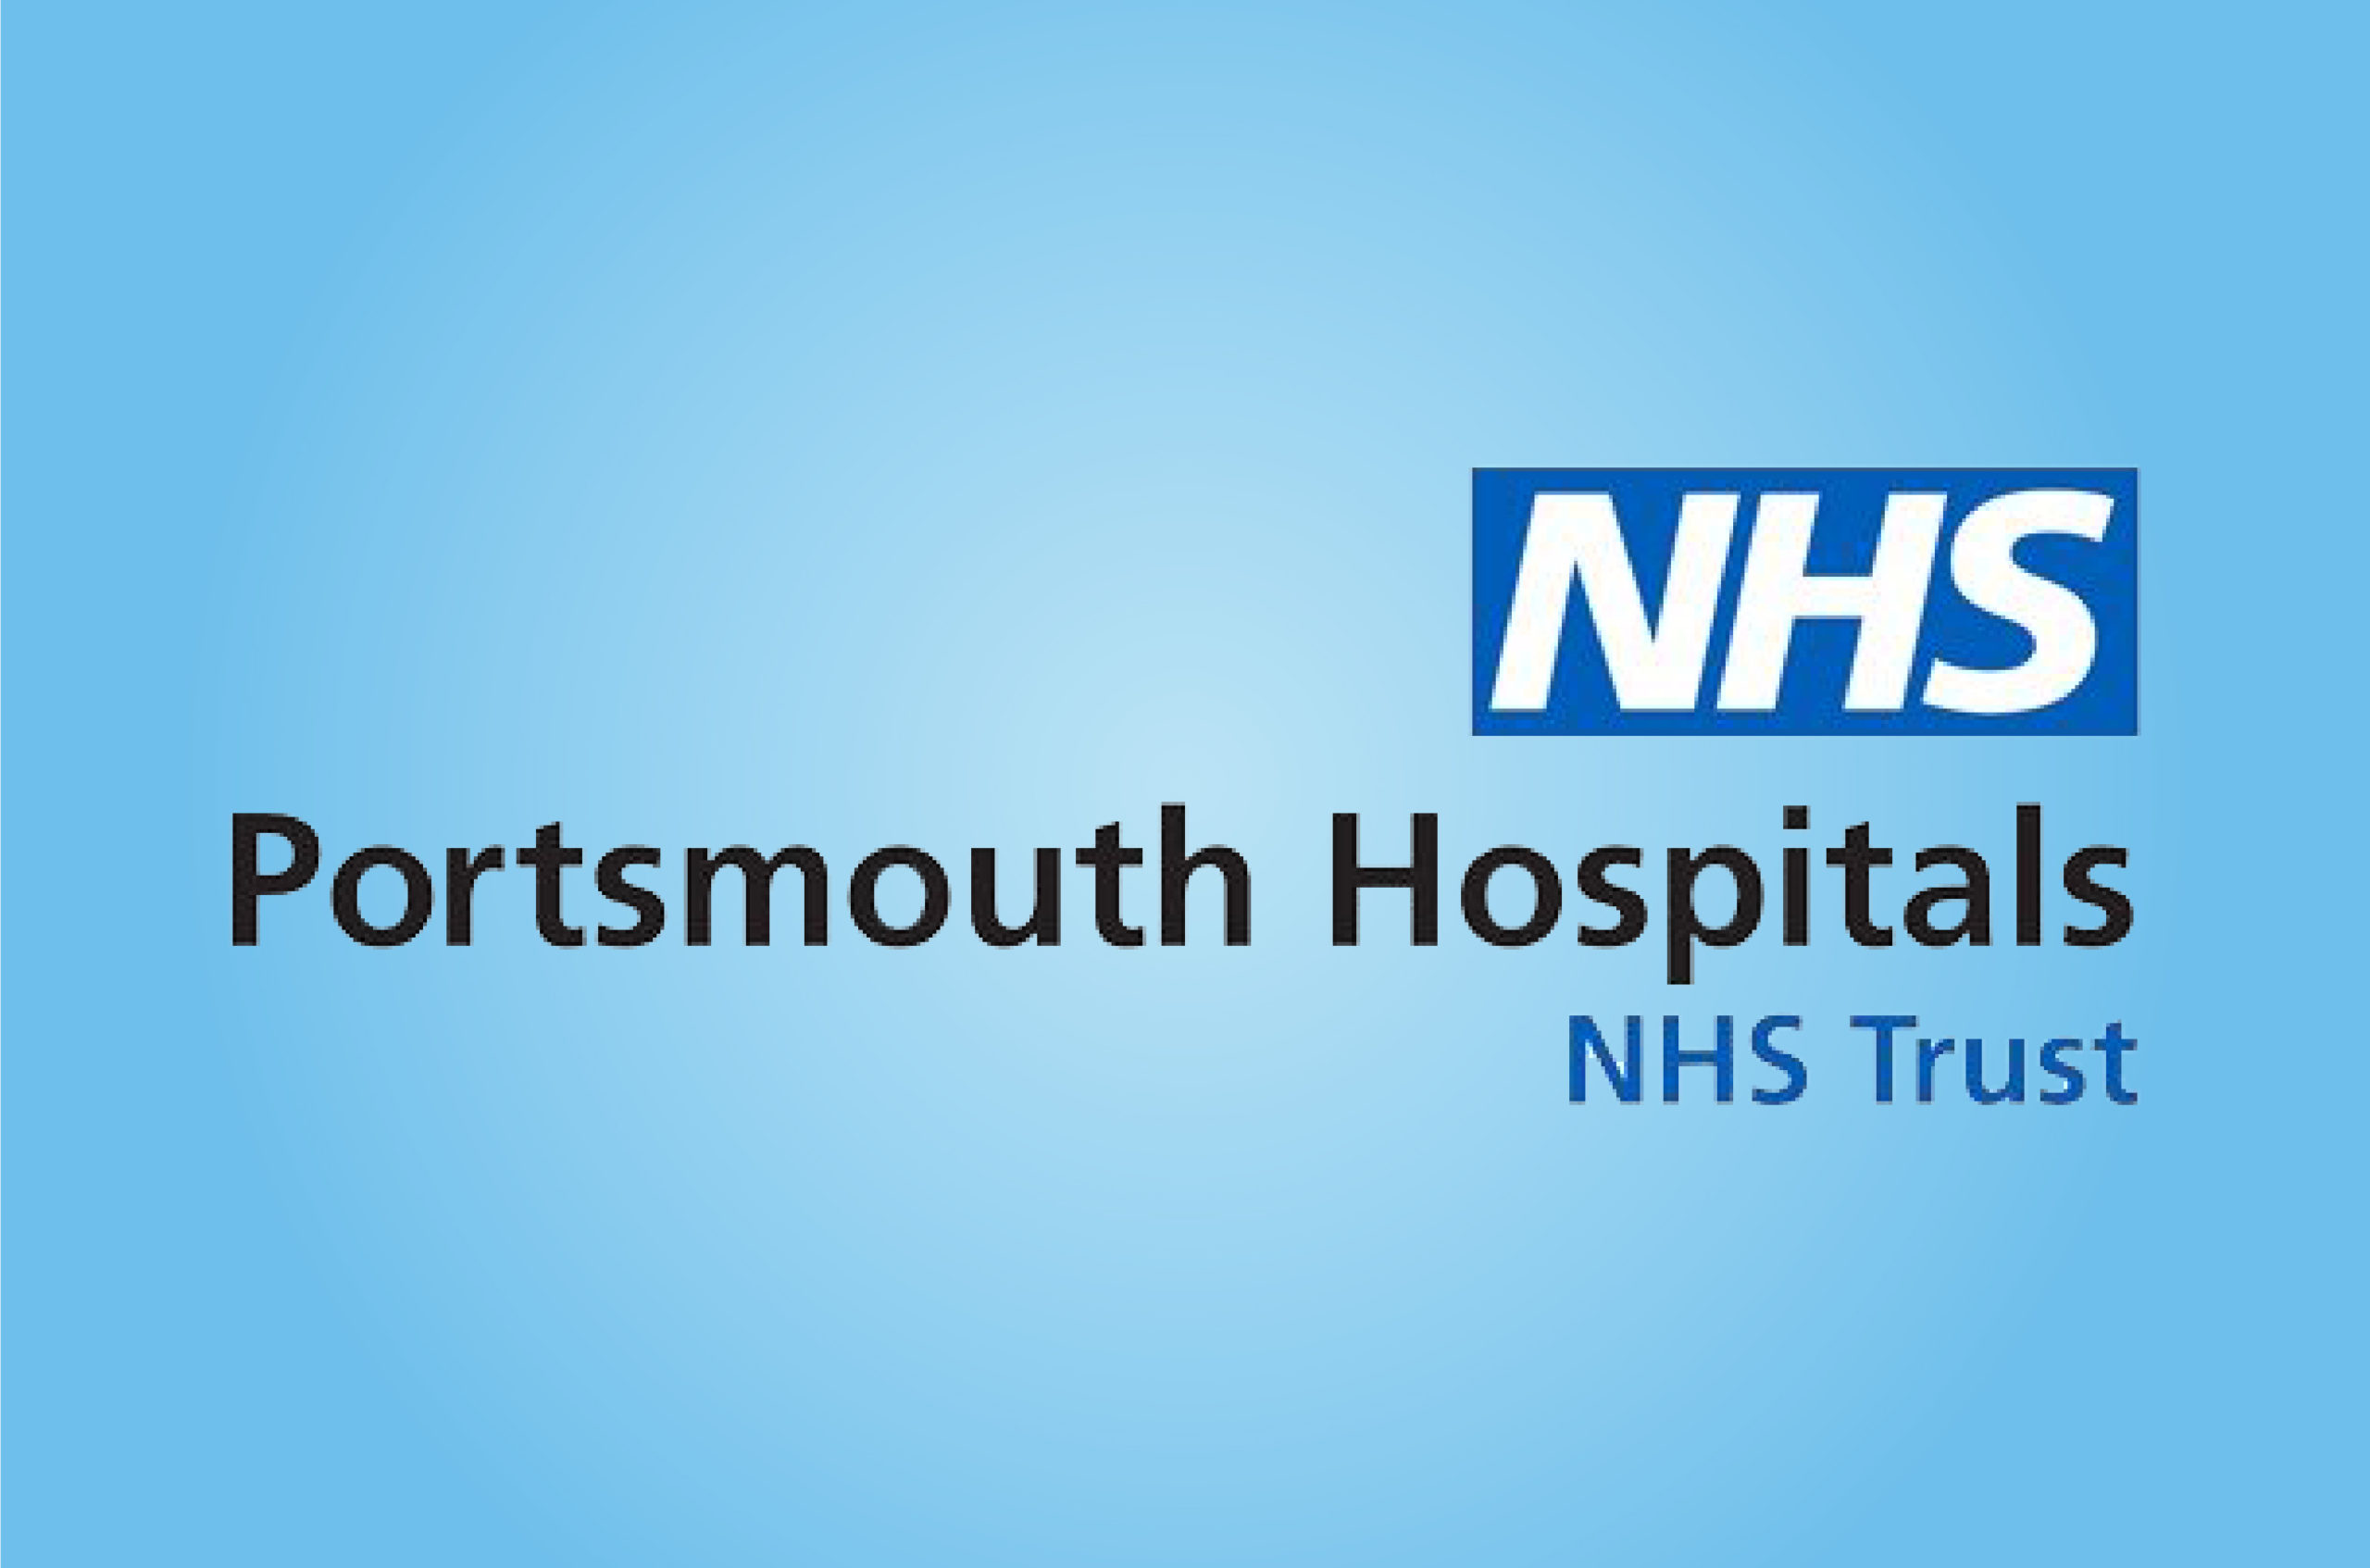 NHS Portsmouth hospitals NHS trust